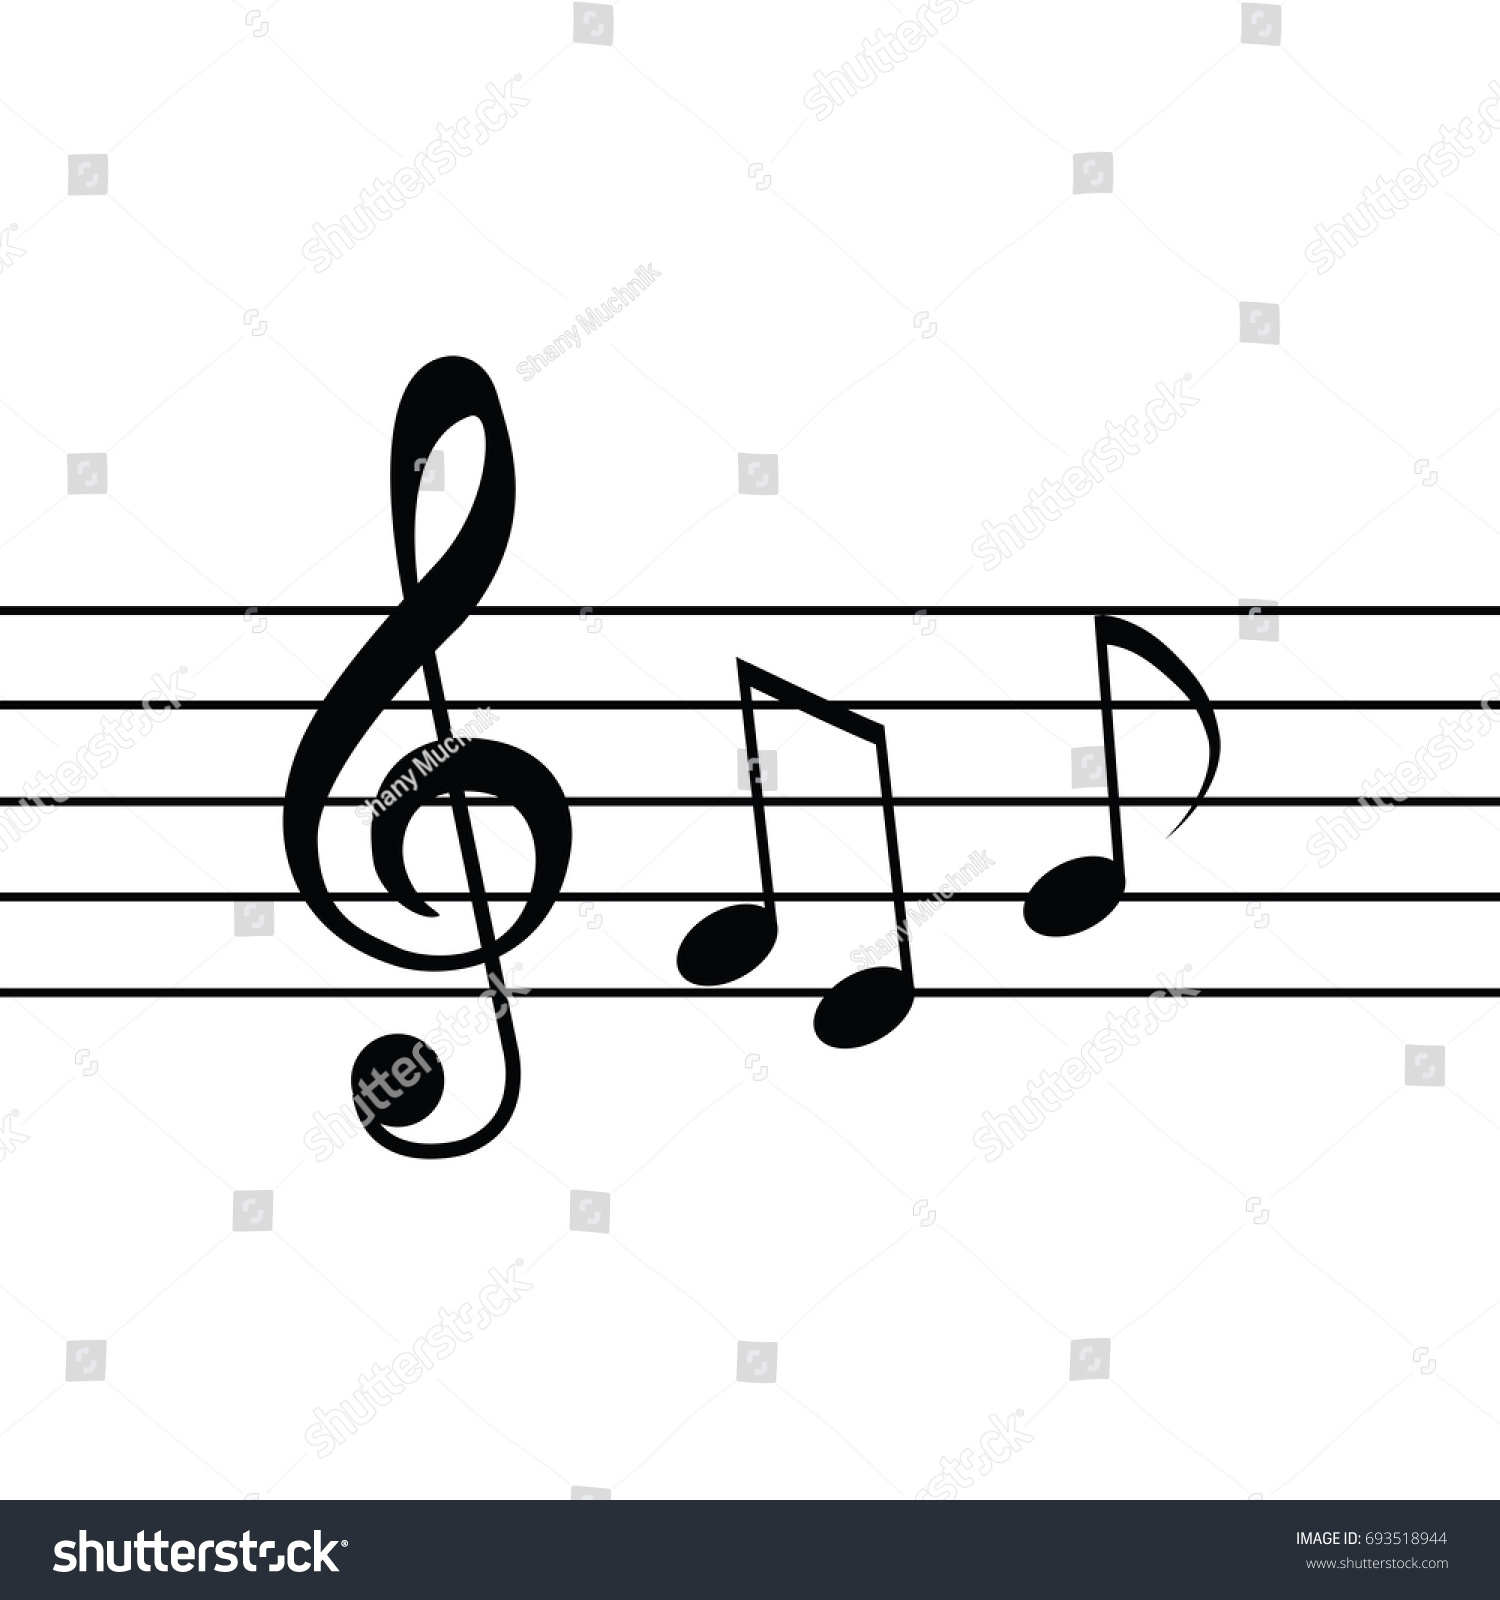 Treble clef flat design simple clean modern on black white music background isolated musical